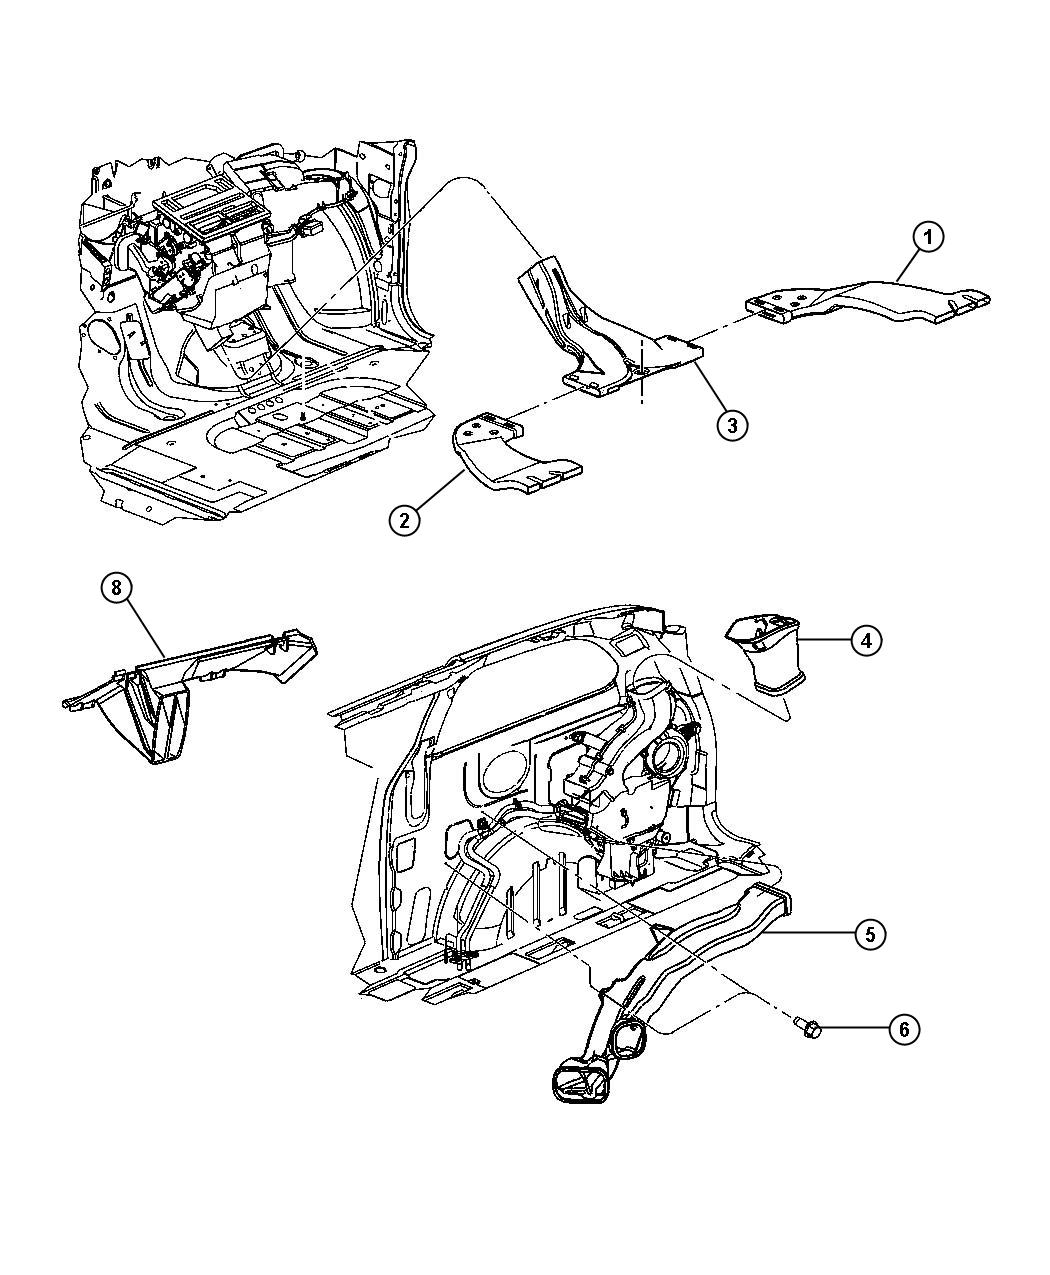 Chrysler Town & Country Duct. Floor distribution. Right